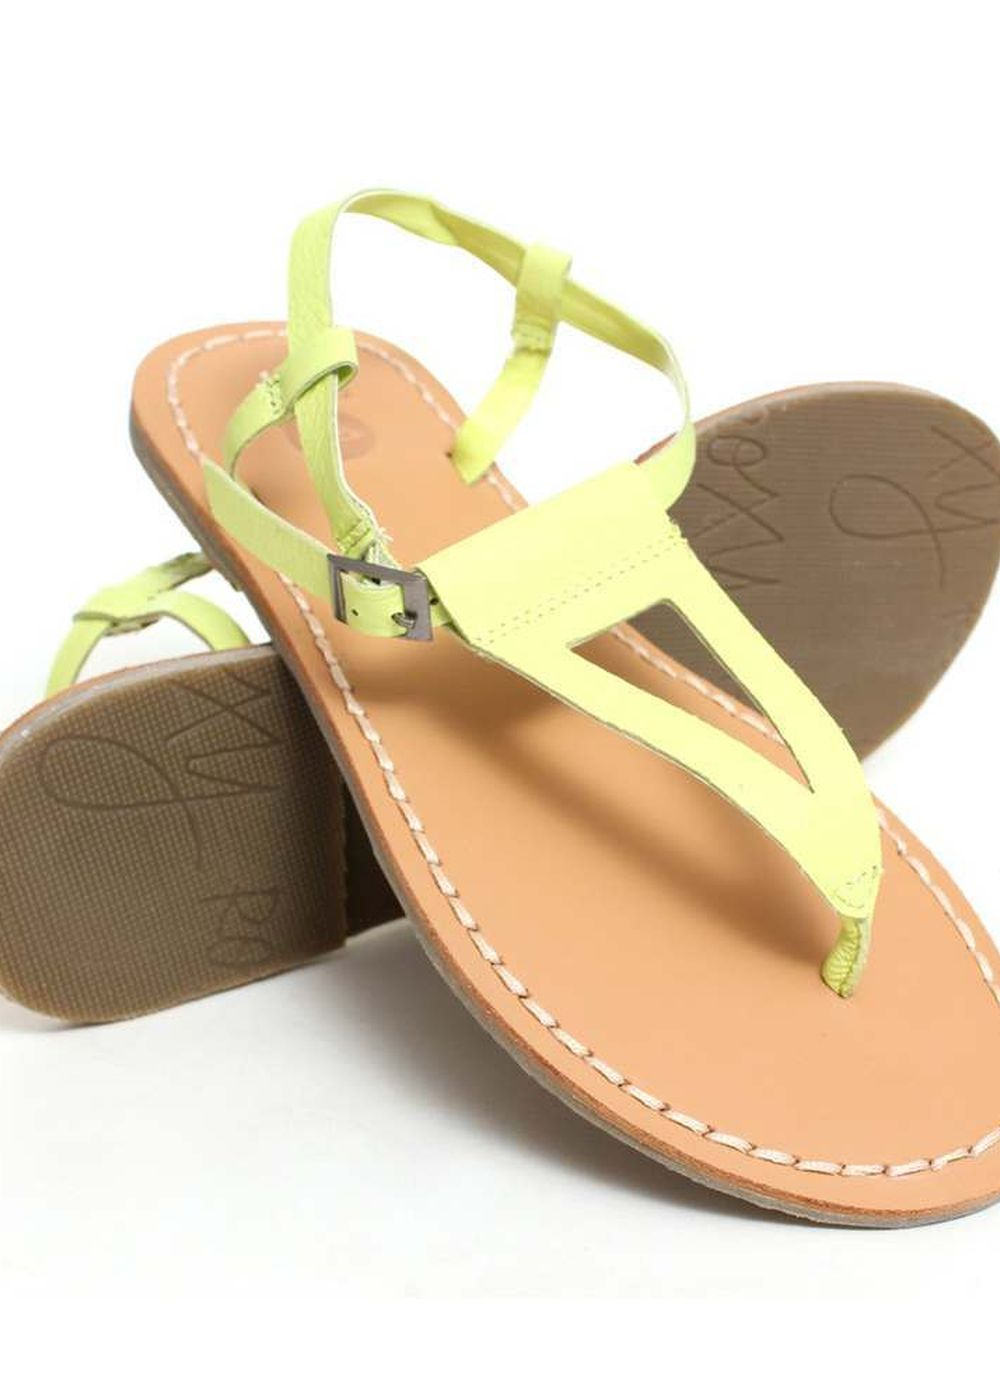 ROXY NYMPH SANDALS Lime